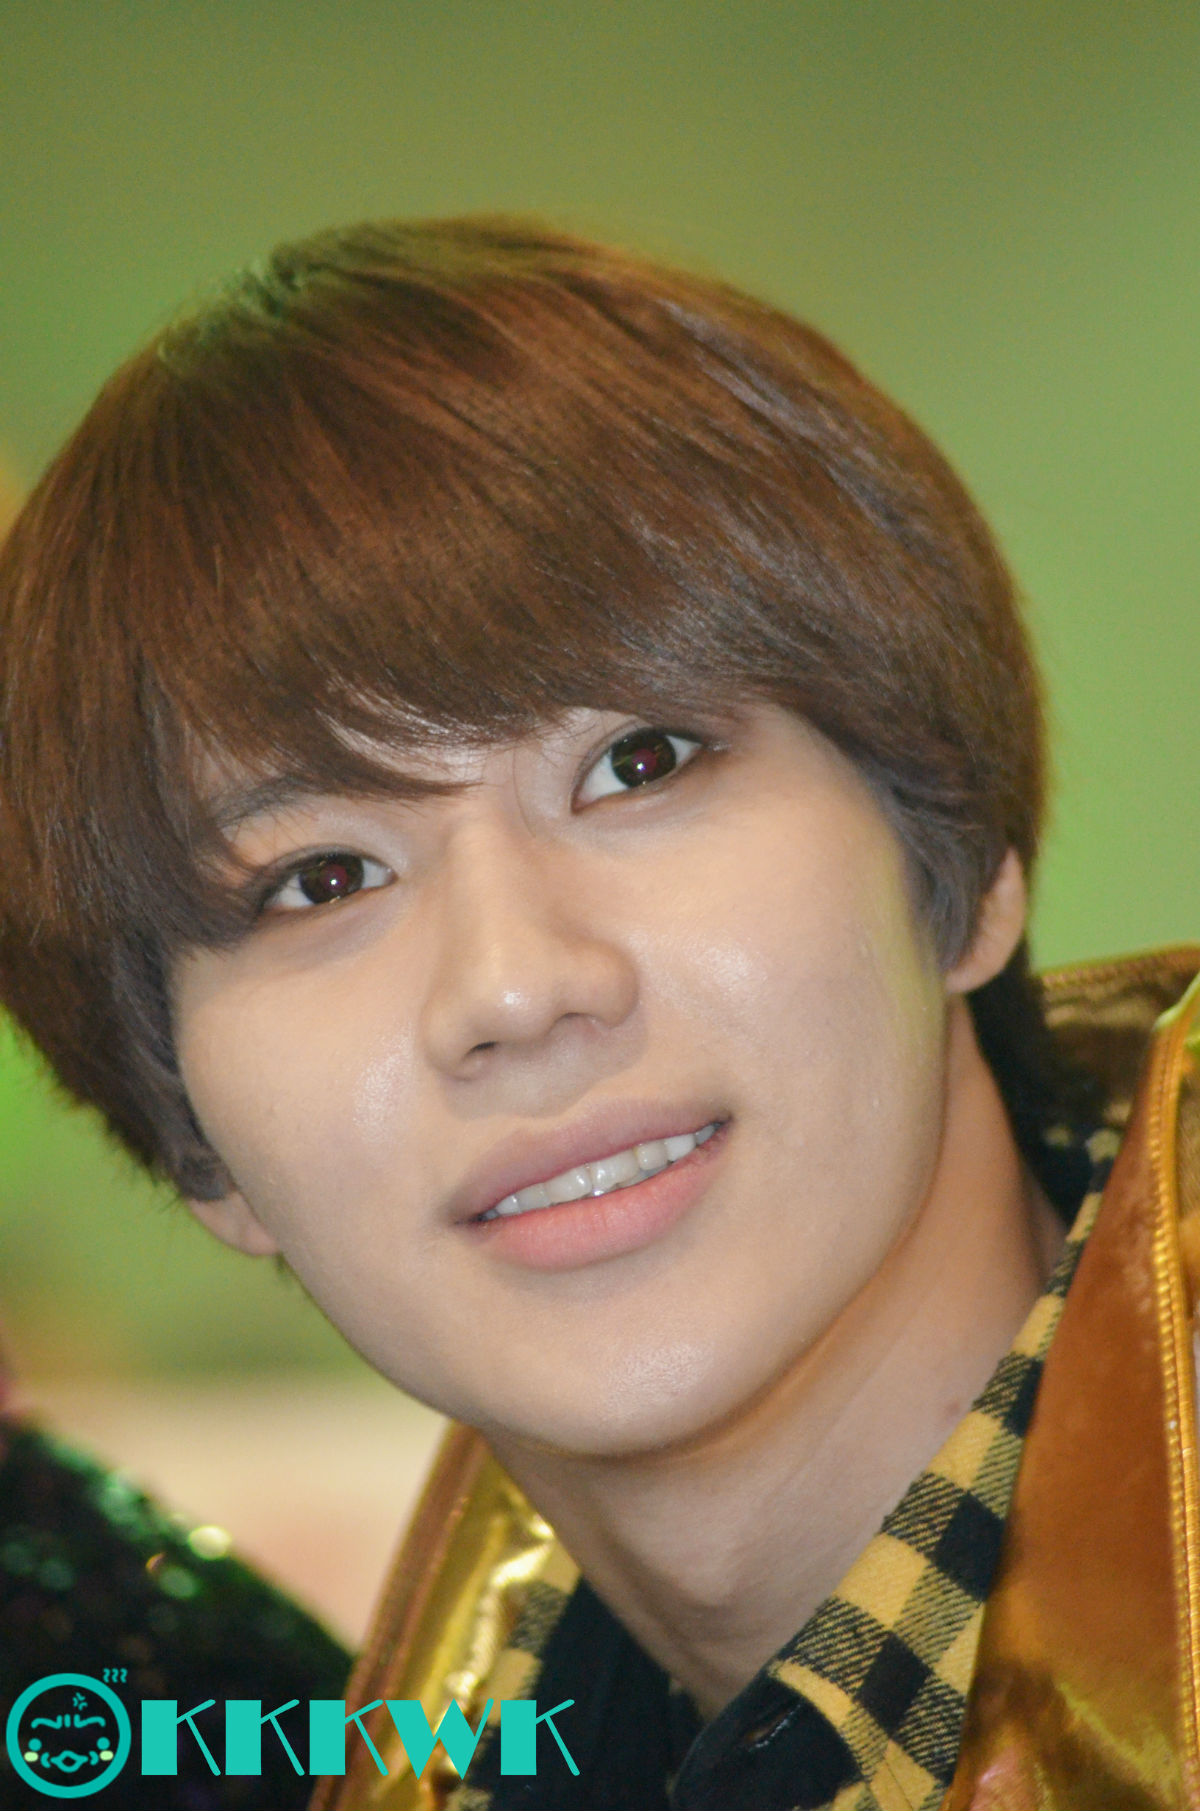 taemin and sulli confirmed dating